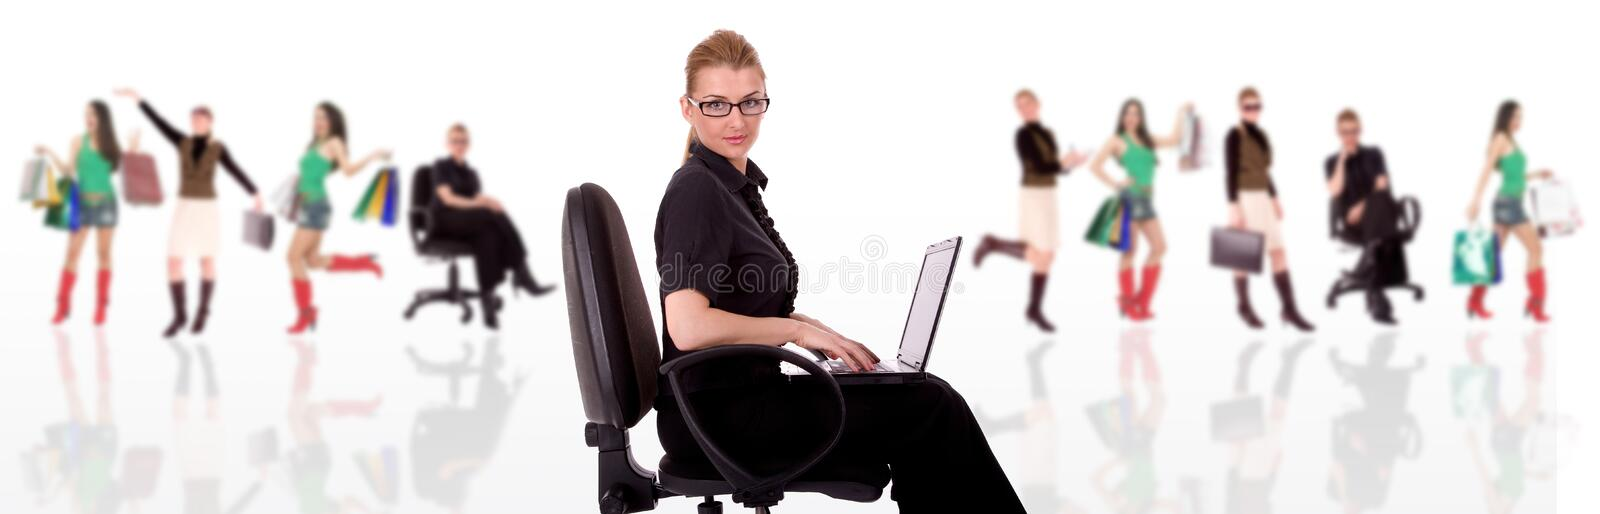 Download Businesswoman stock image. Image of office, coworkers - 4449685